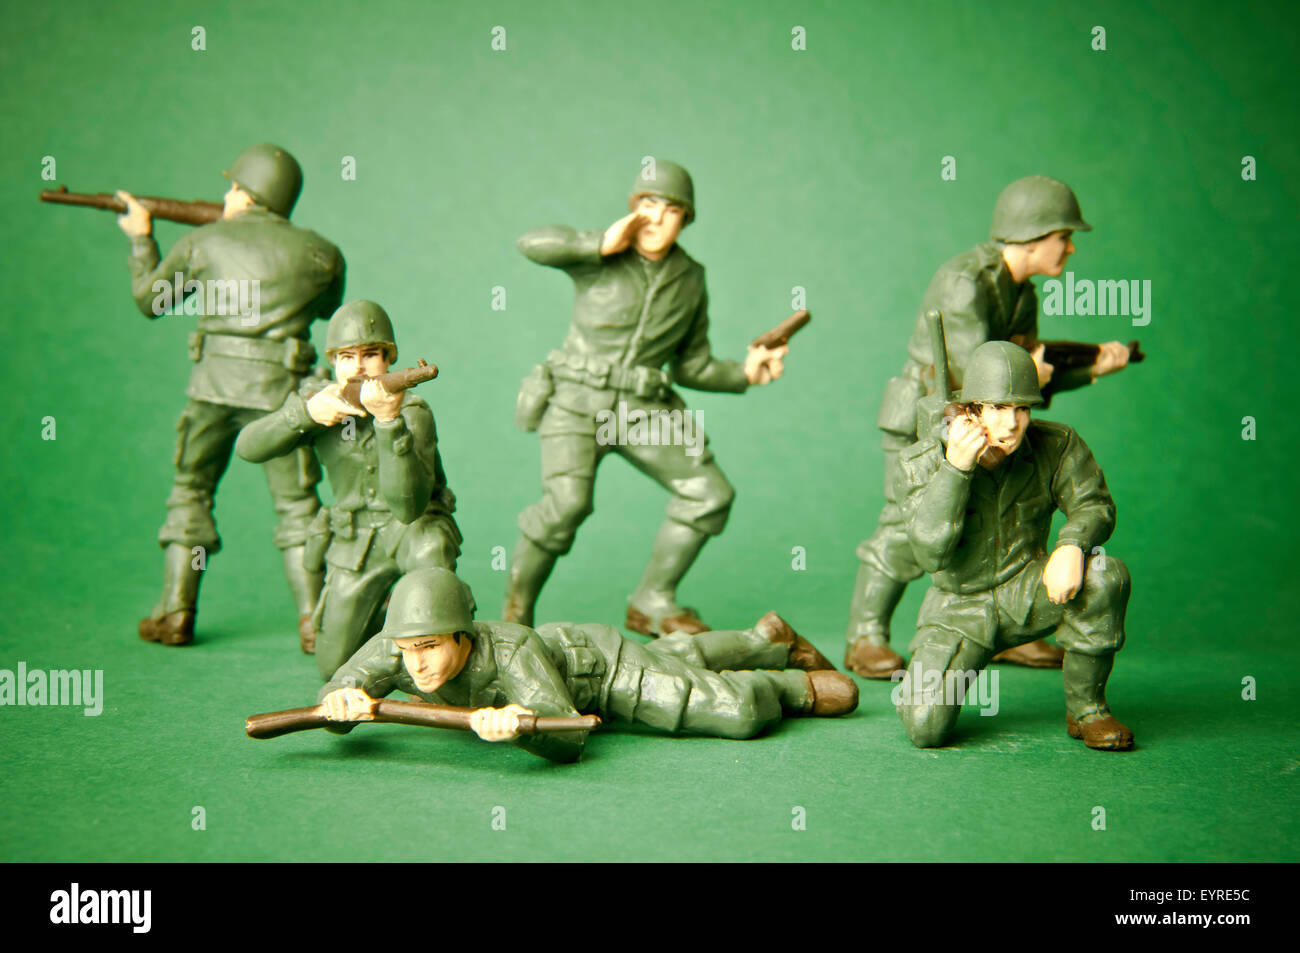 US army toy plastic soldiers - Stock Image